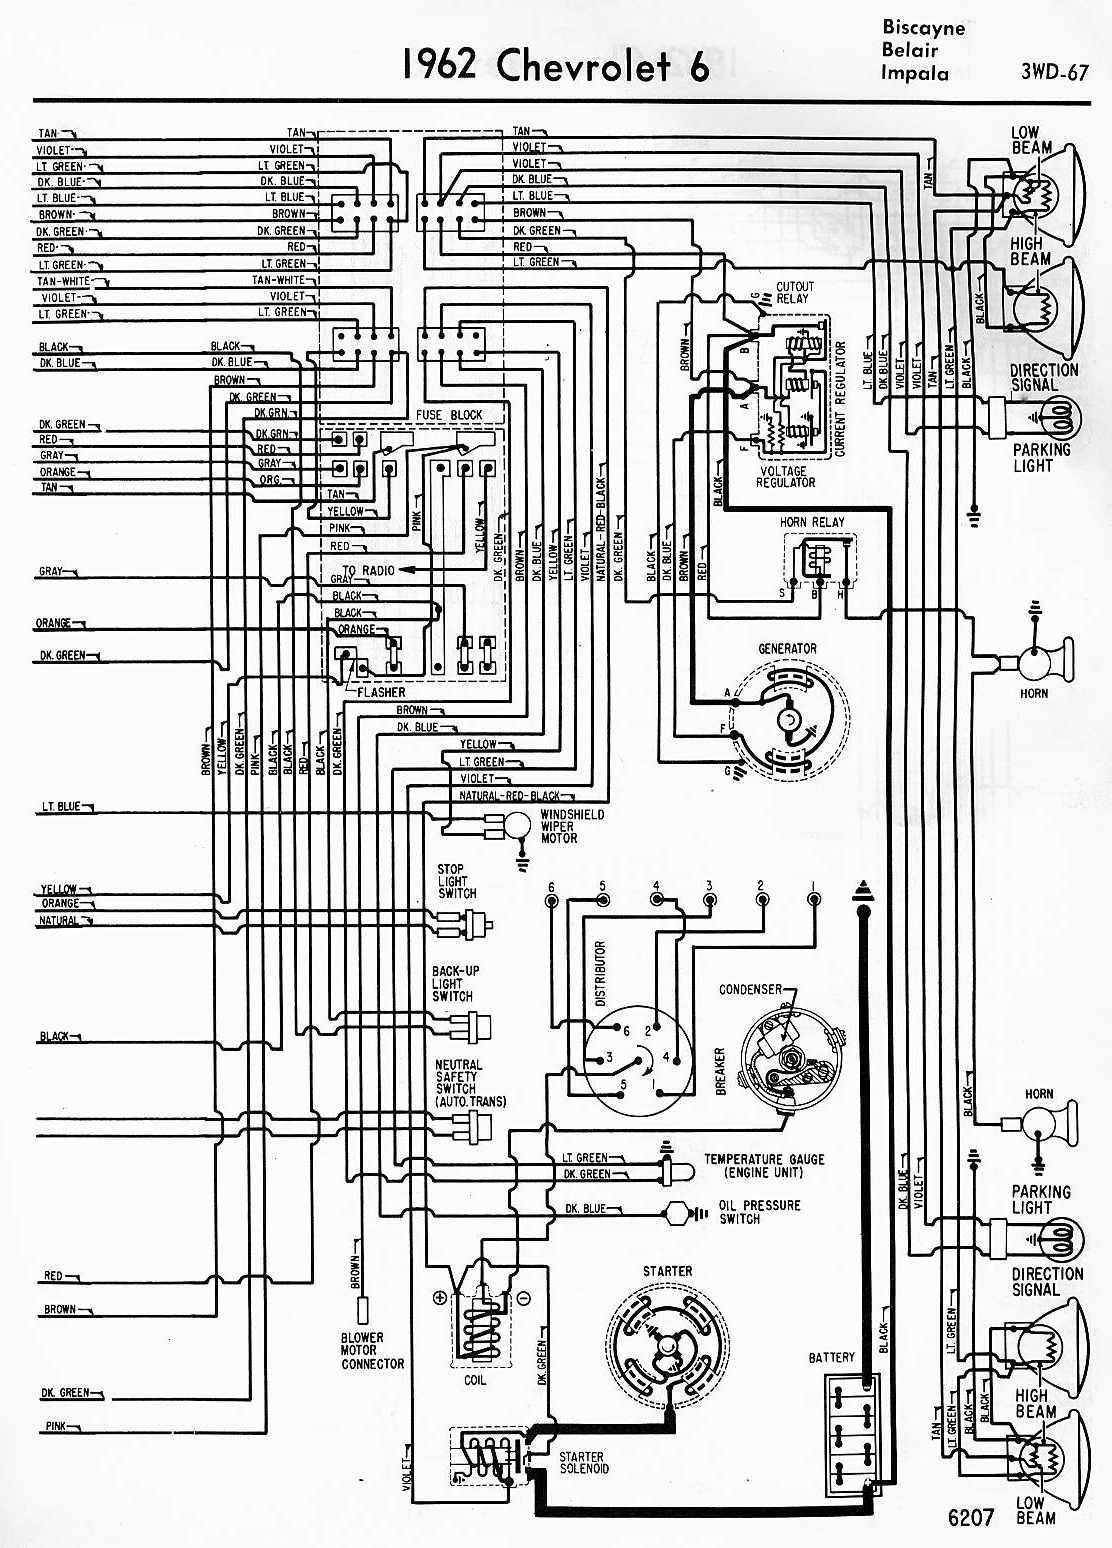 66 6 Cylinder Gm Wiring Harness Diagram All 1957 Chevy Bel Air 1970 Impala Data Blog Ls